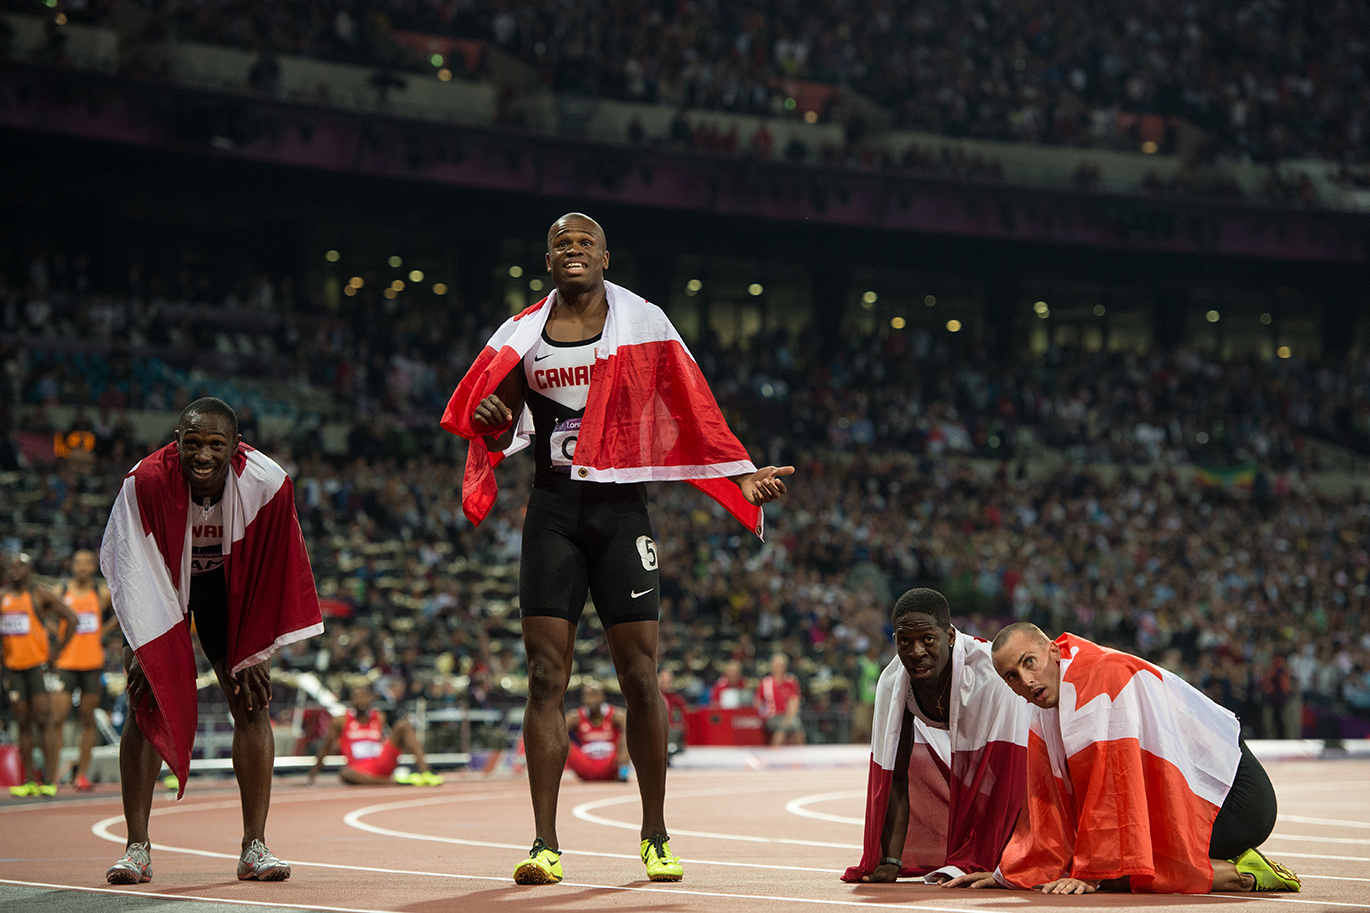 Canadian sprinters at London 2012 before it was learned that they had been disqualified from the 4x100m.